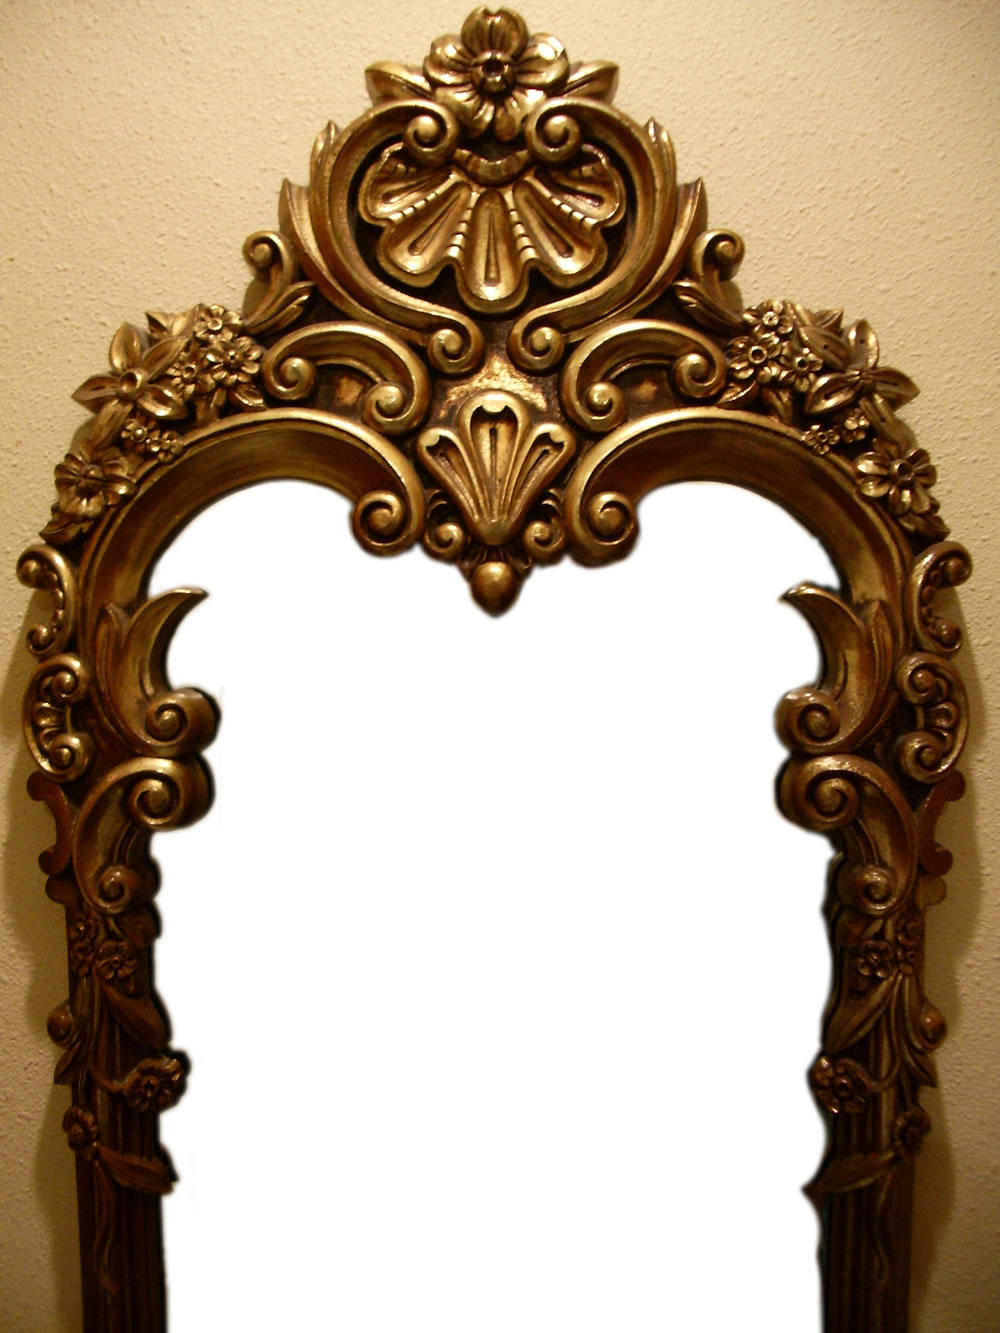 Gothic Mirror I By Khai666 On DeviantArt